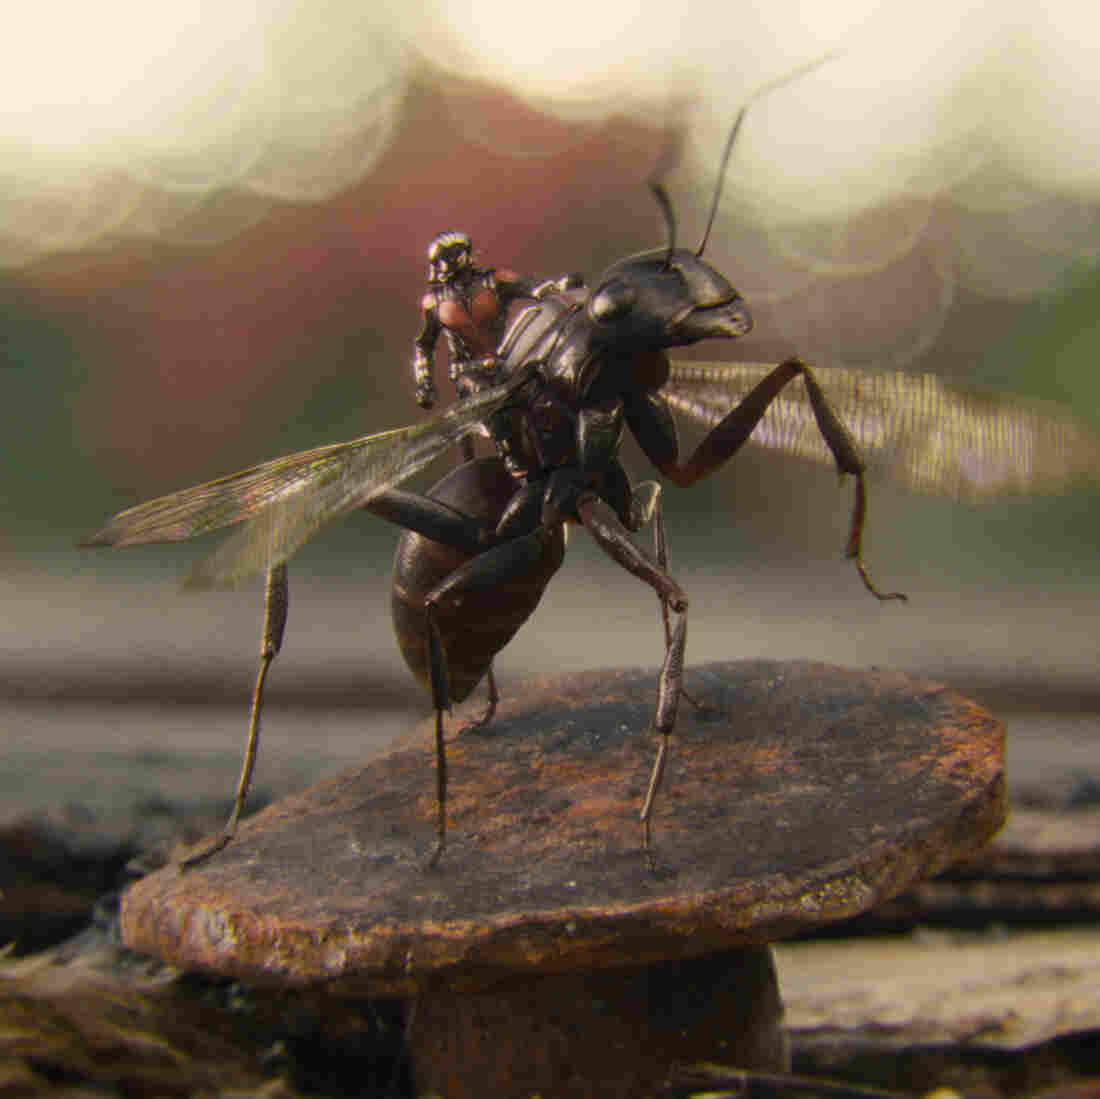 Visual effects supervisor Jake Morrison wanted Ant-Man's titular insects to be both accurate and relatable.